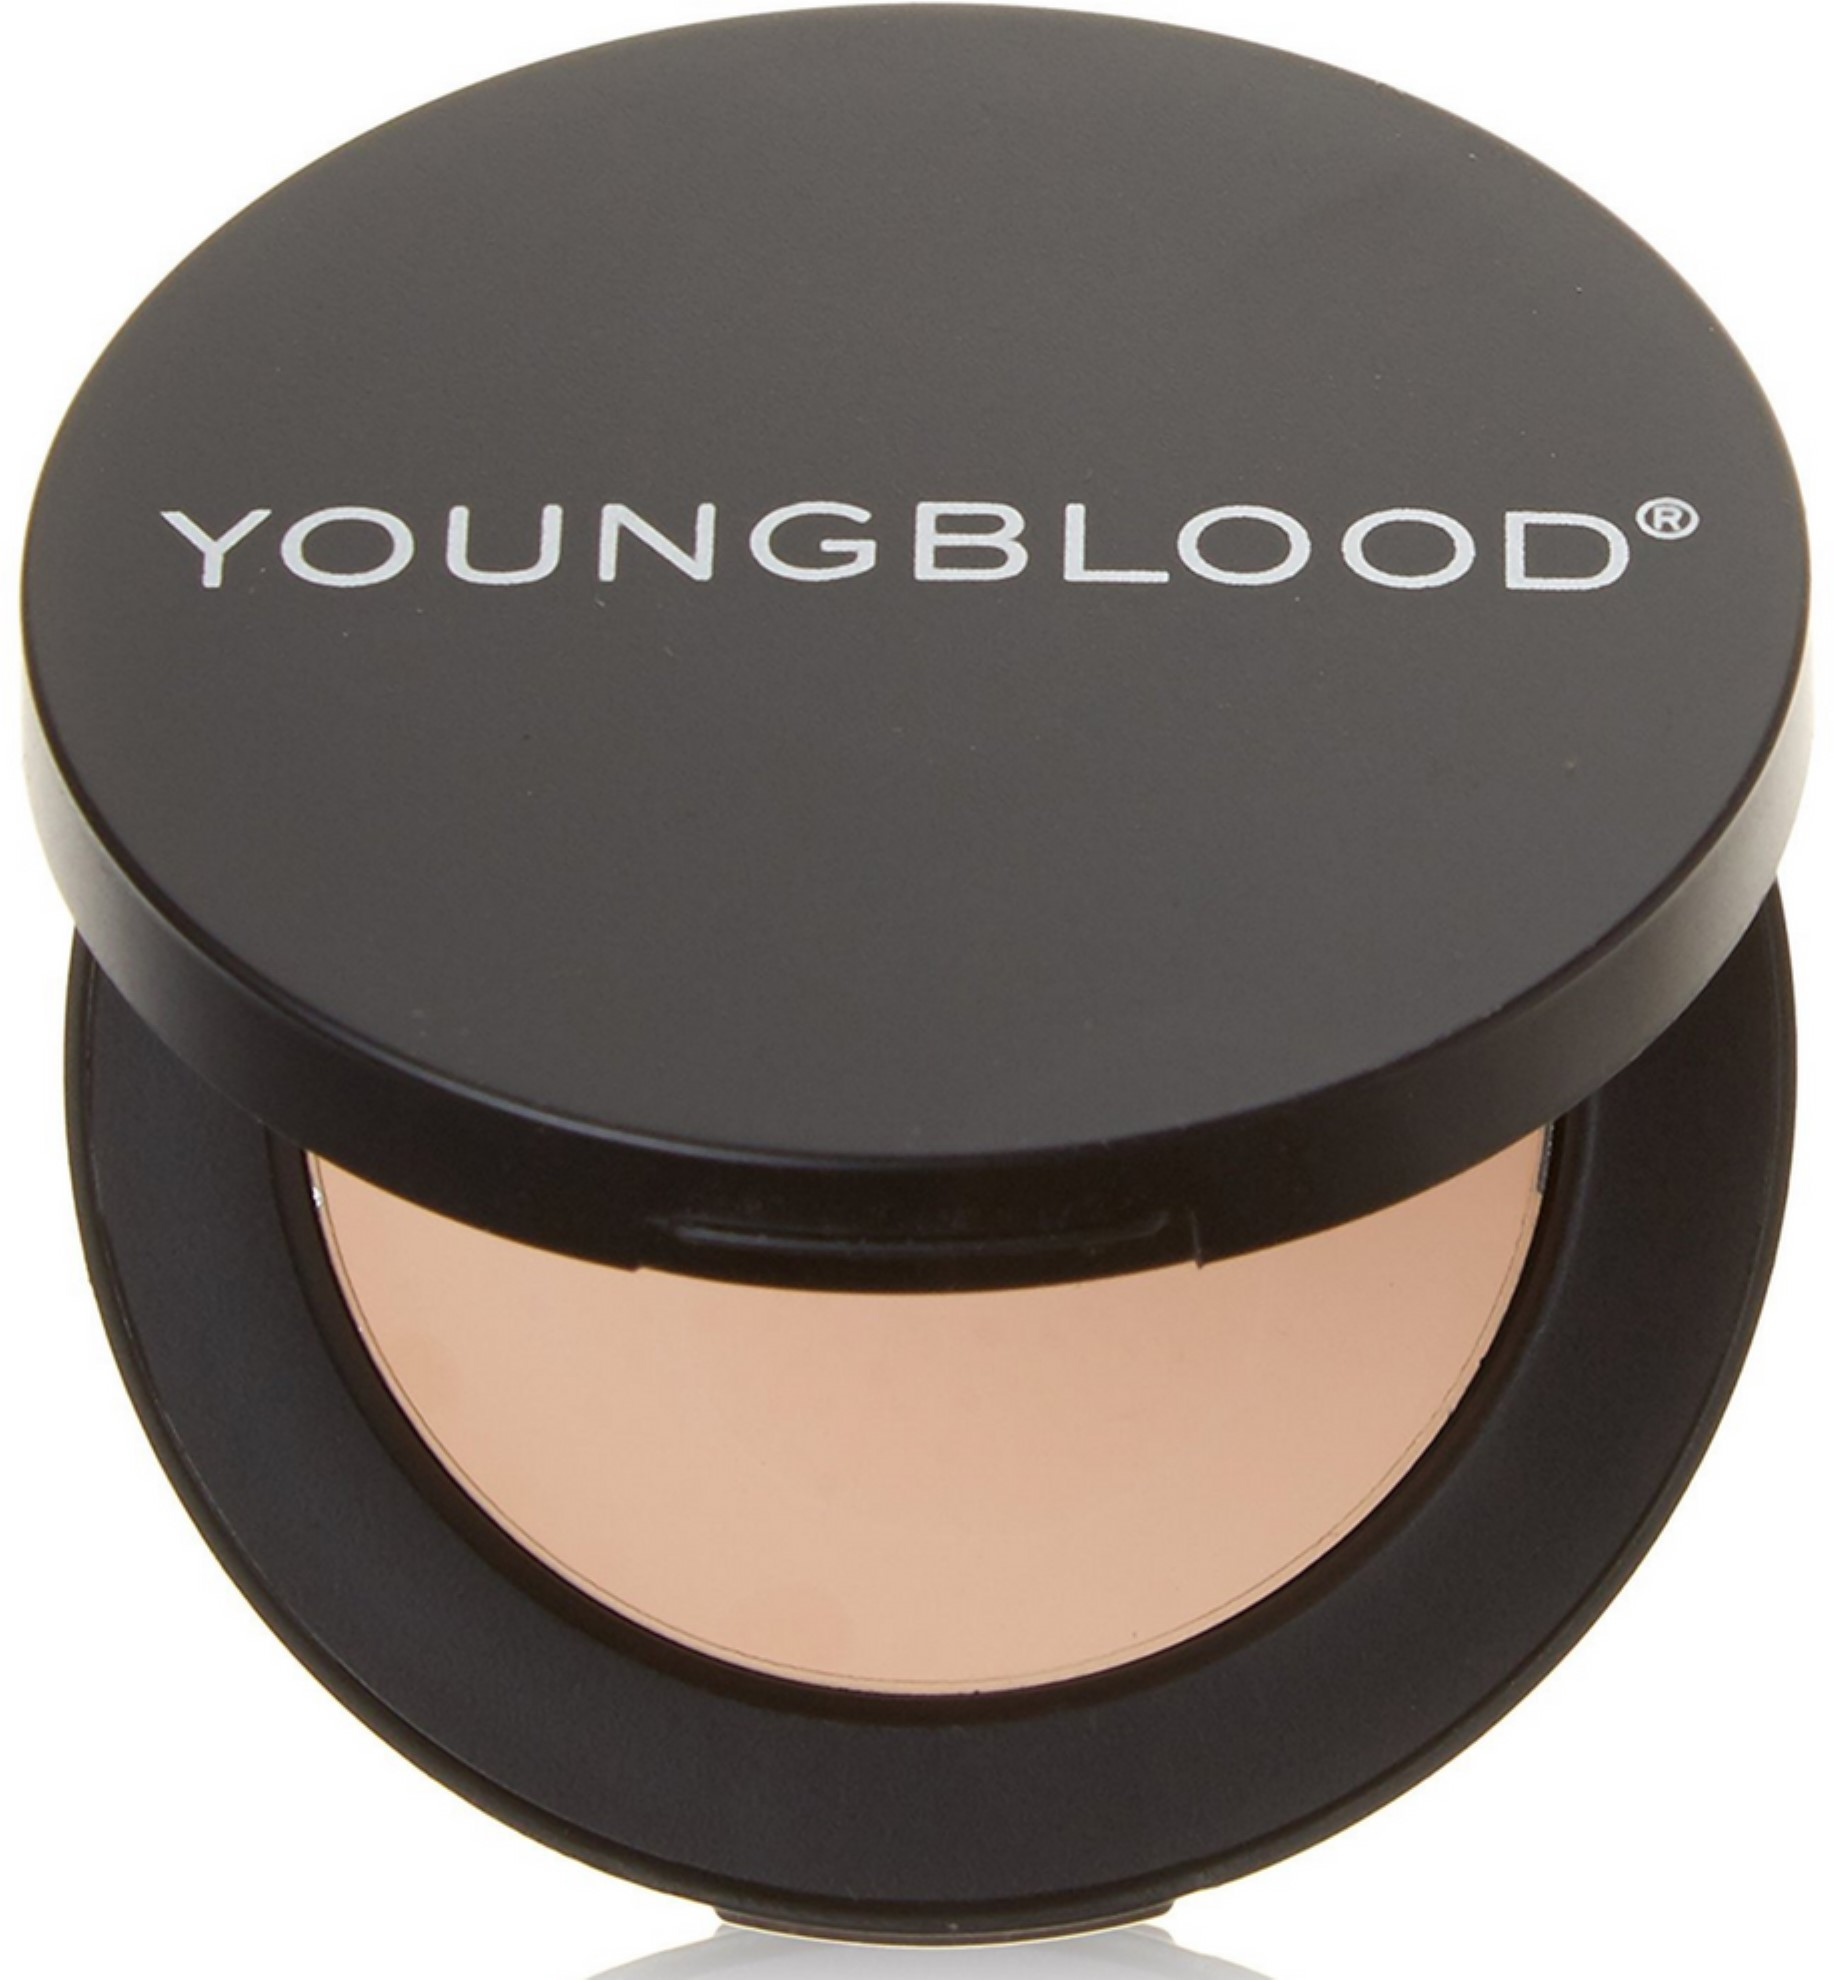 Youngblood Ultimate Concealer, Medium 0.10 oz